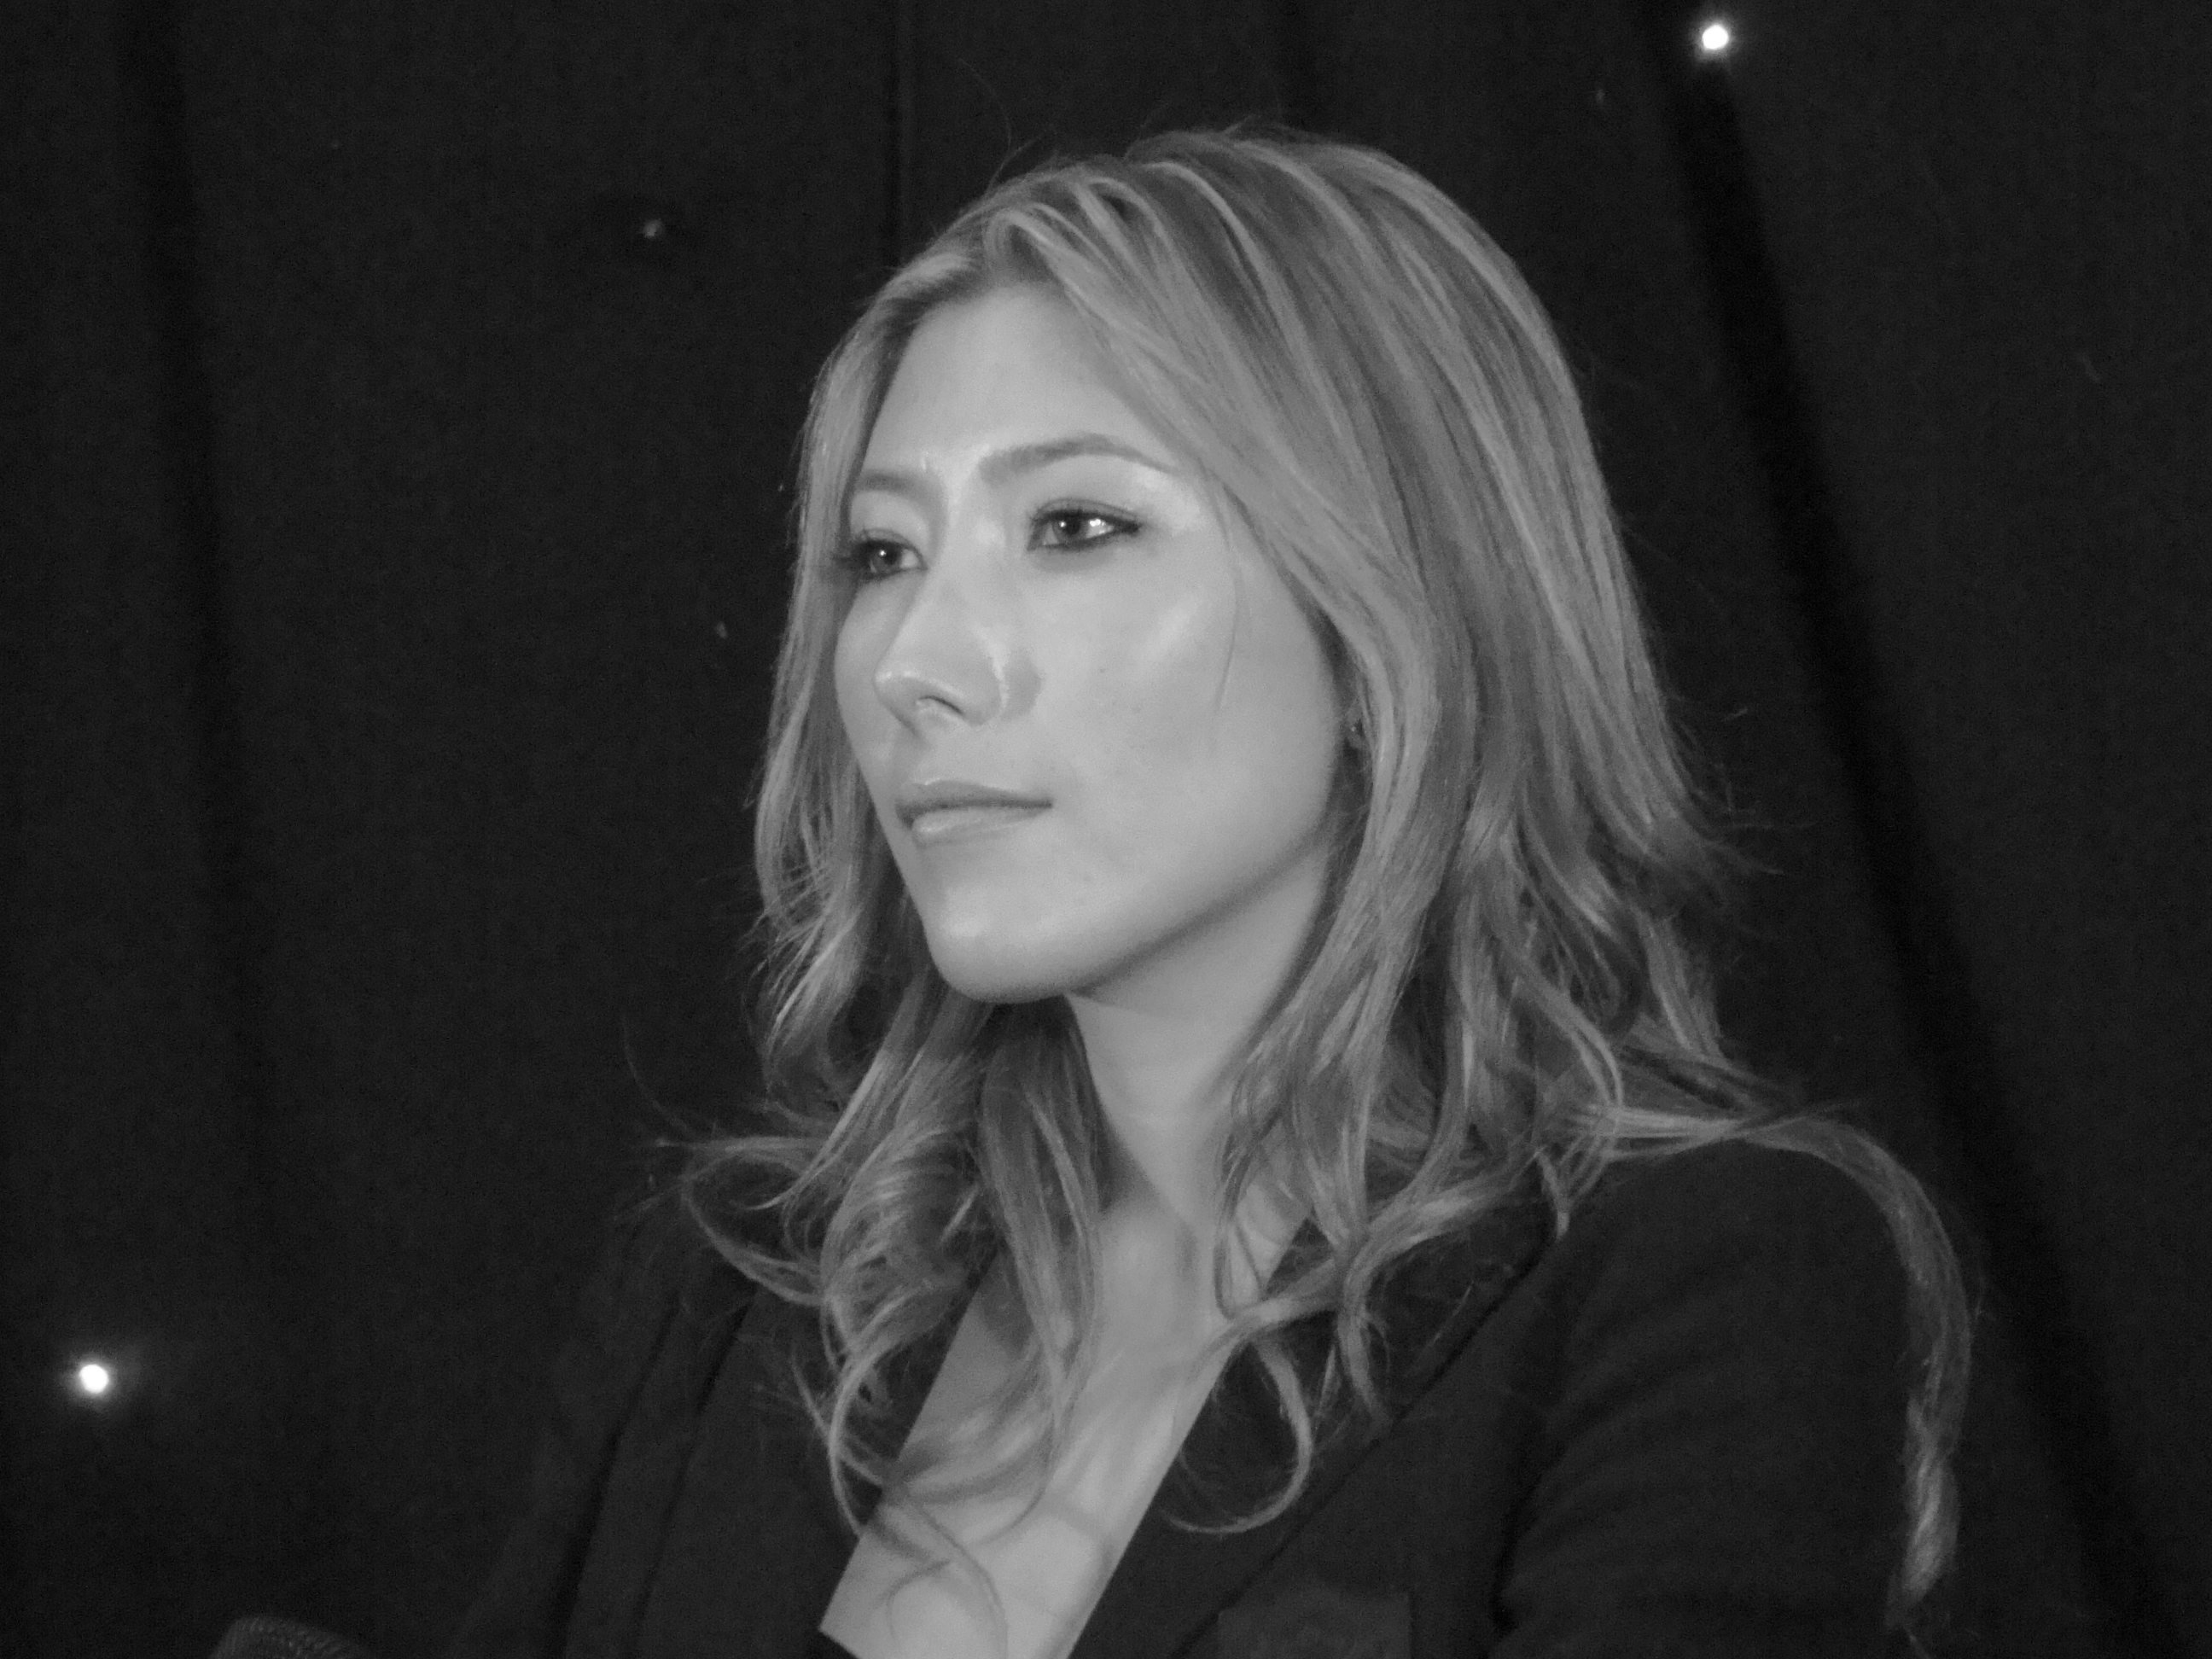 dichen lachman tumblrdichen lachman supergirl, dichen lachman instagram, dichen lachman photoshoot, dichen lachman, dichen lachman imdb, dichen lachman the 100, dichen lachman agents of shield, dichen lachman tumblr, dichen lachman wiki, dichen lachman movies and tv shows, dichen lachman being human, dichen lachman gif, dichen lachman baby, dichen lachman neighbours